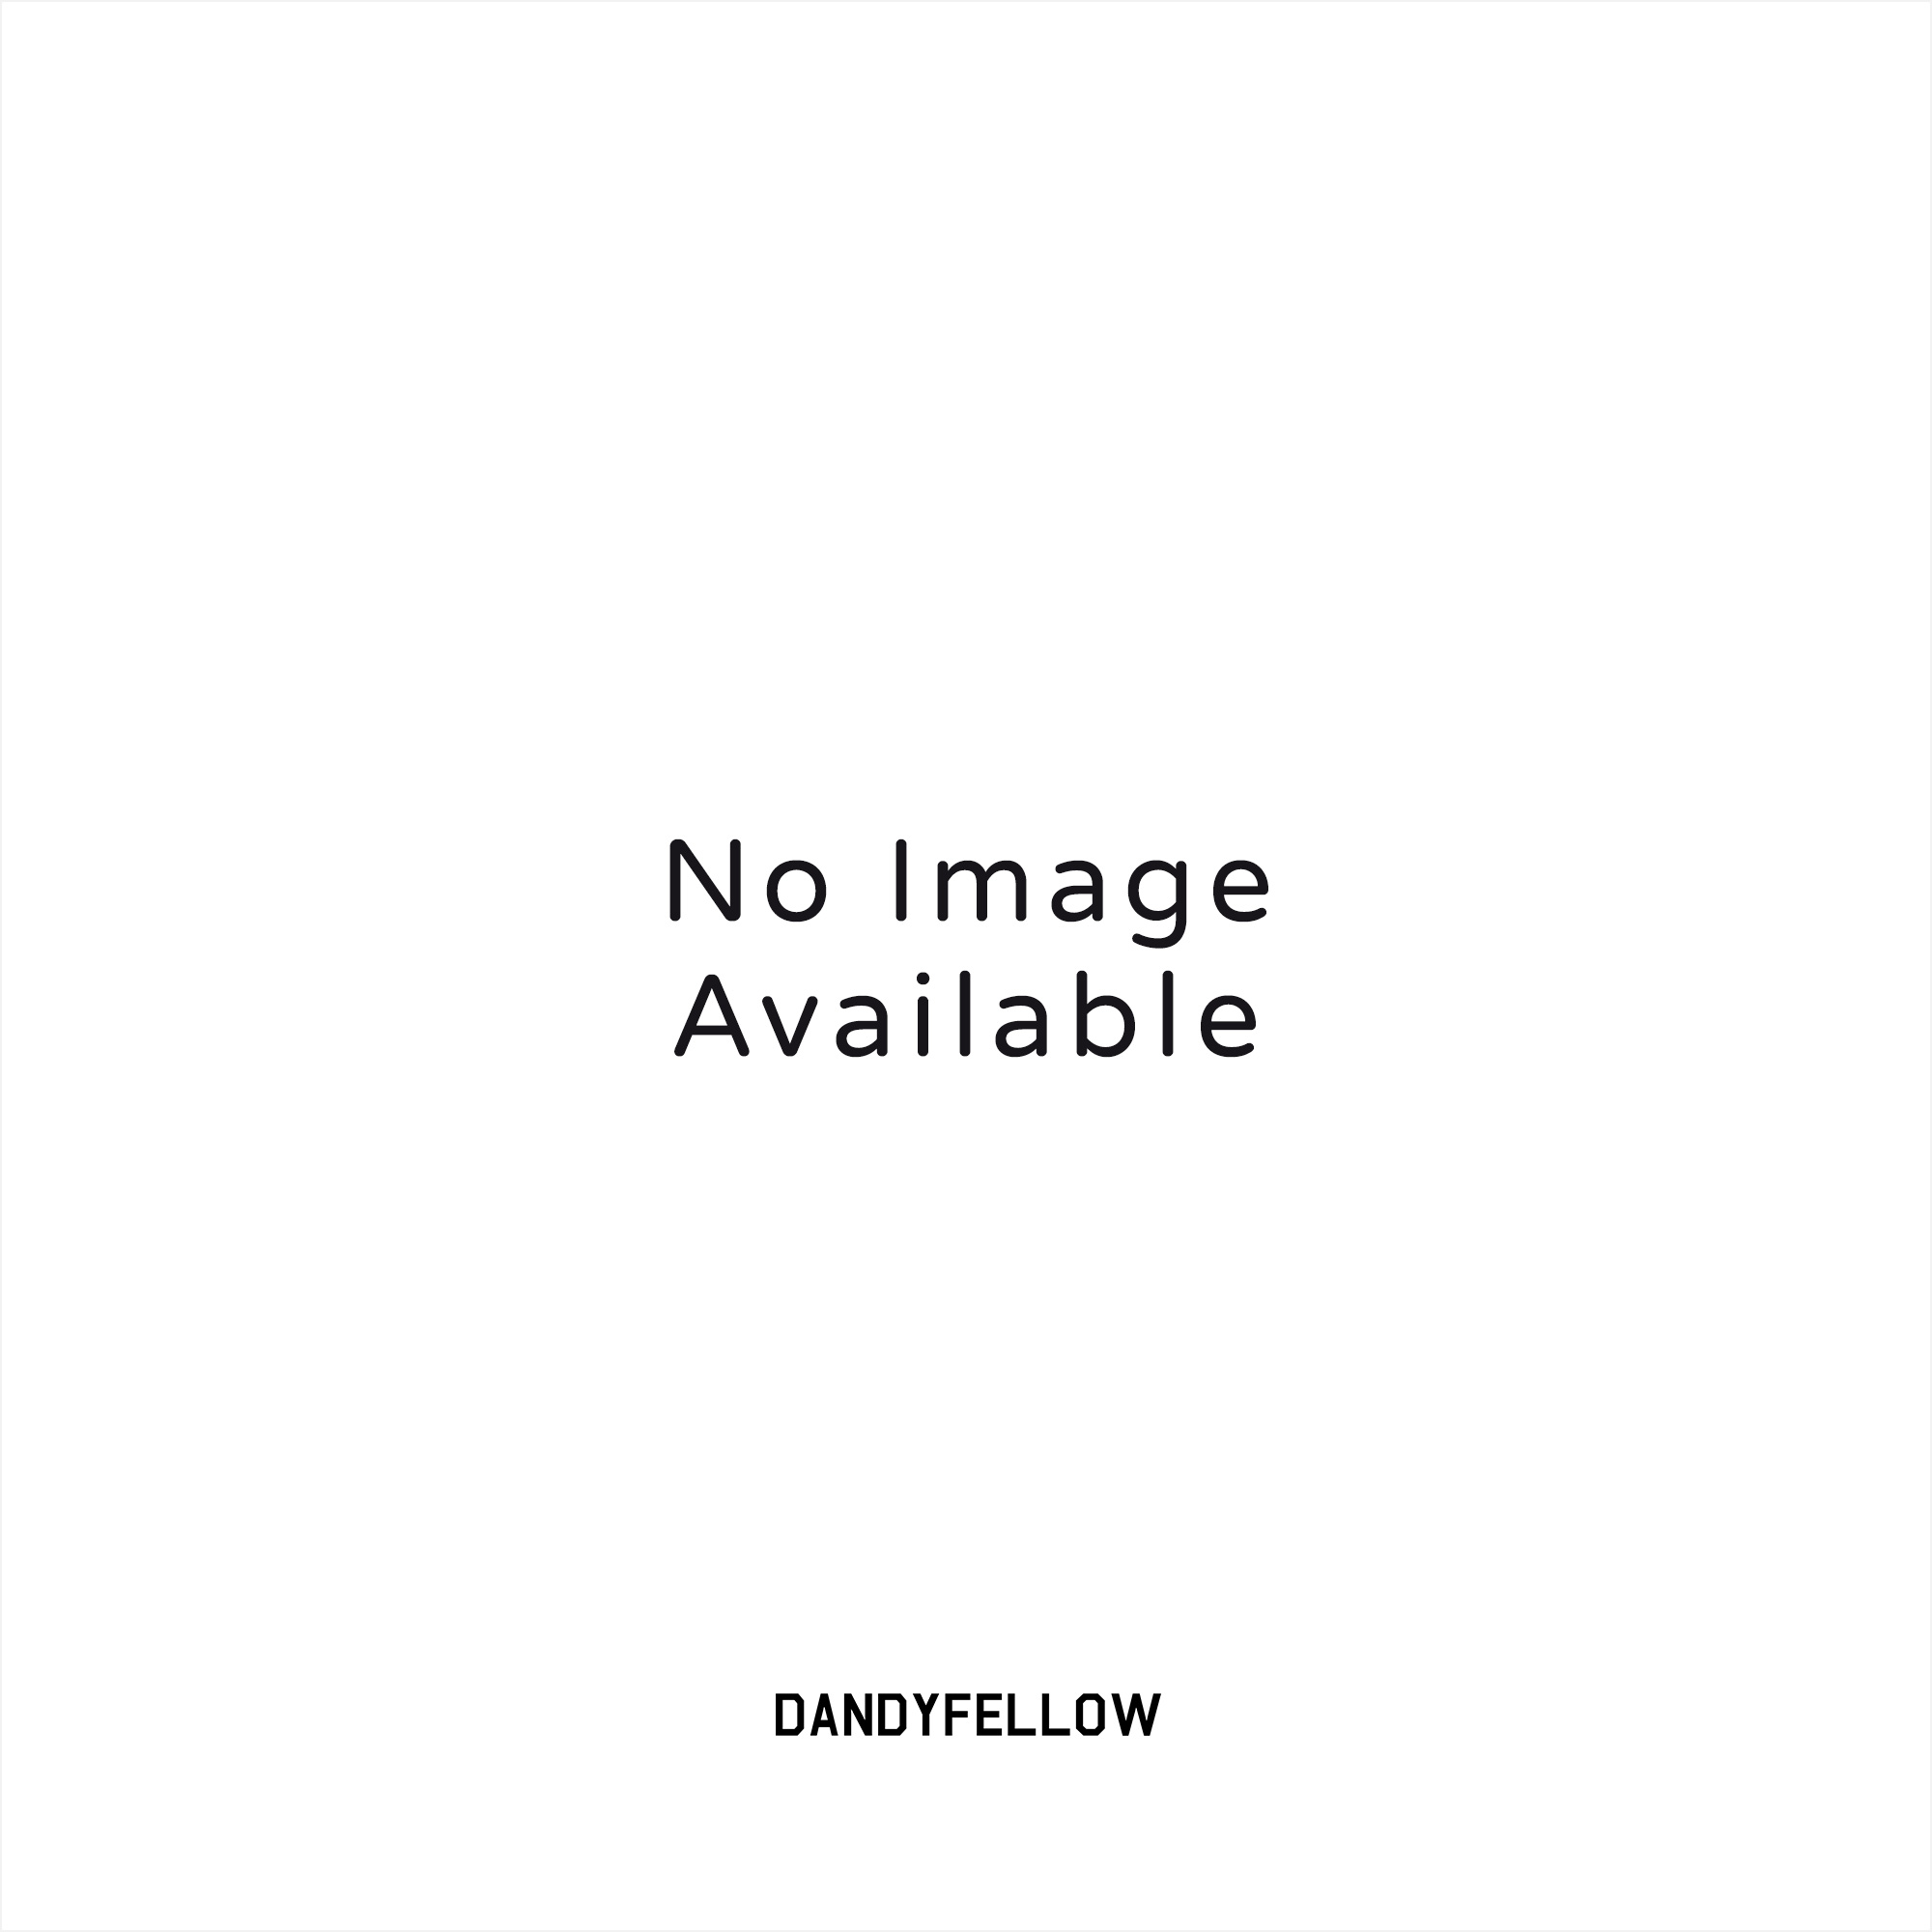 4dd3827ebaa Adidas Y-3 Super Knot (Core Black   White) at Dandy Fellow